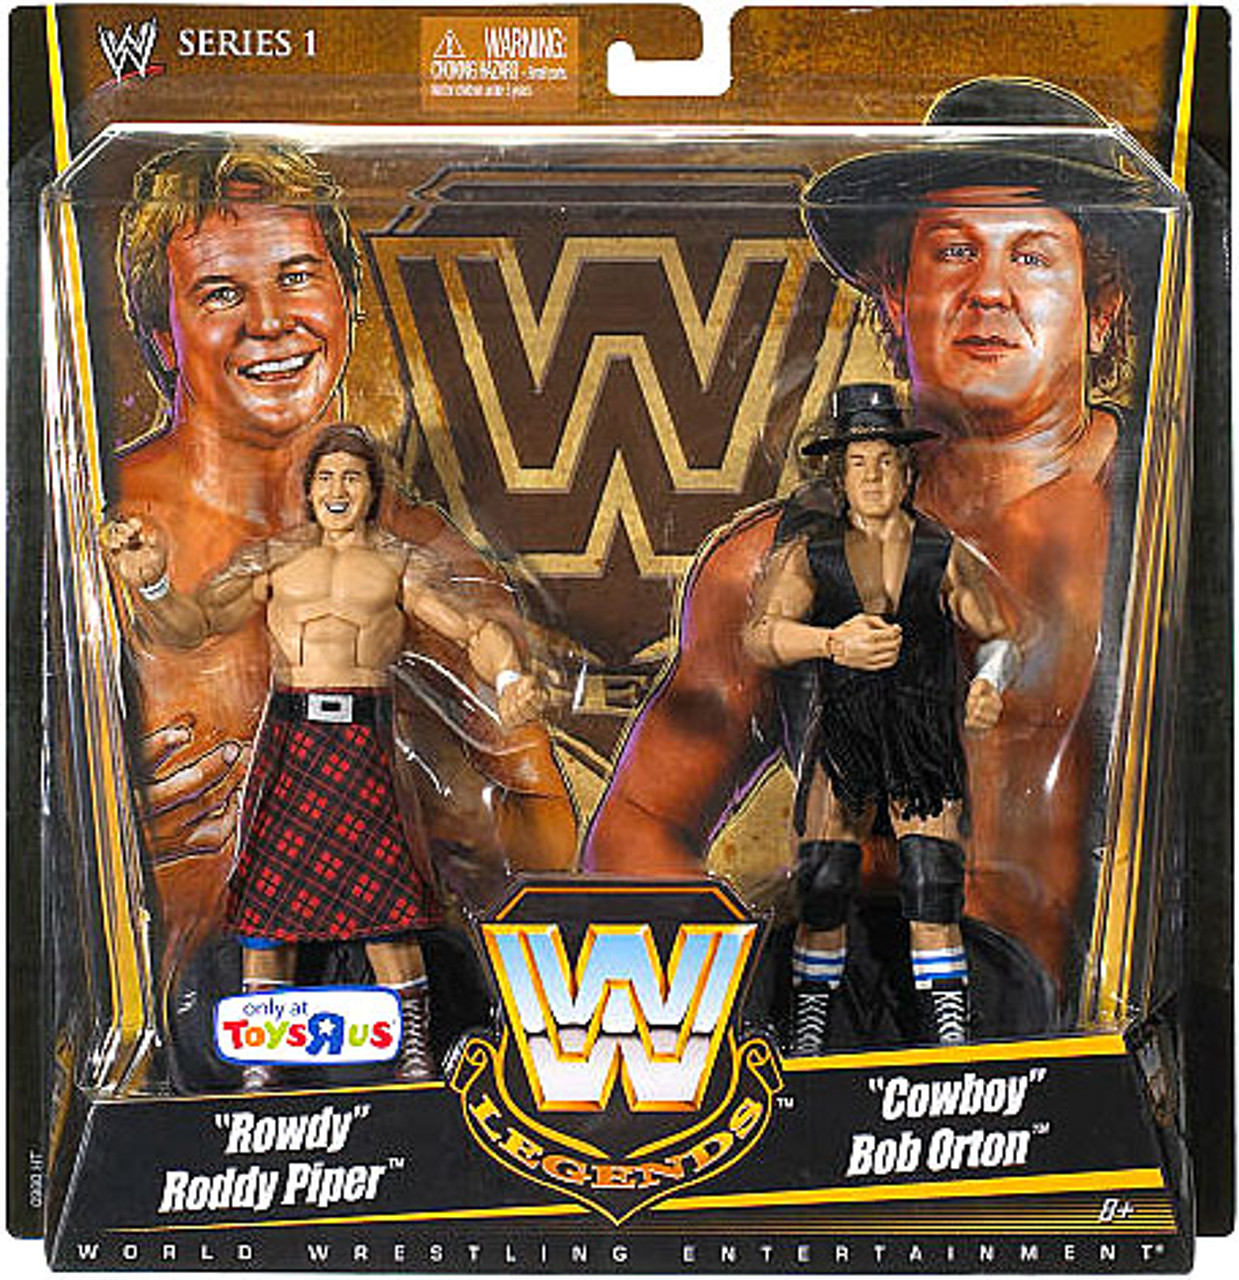 WWE Wrestling Legends Series 1 Rowdy Roddy Piper & Cowboy Bob Orton Exclusive Action Figure 2-Pack